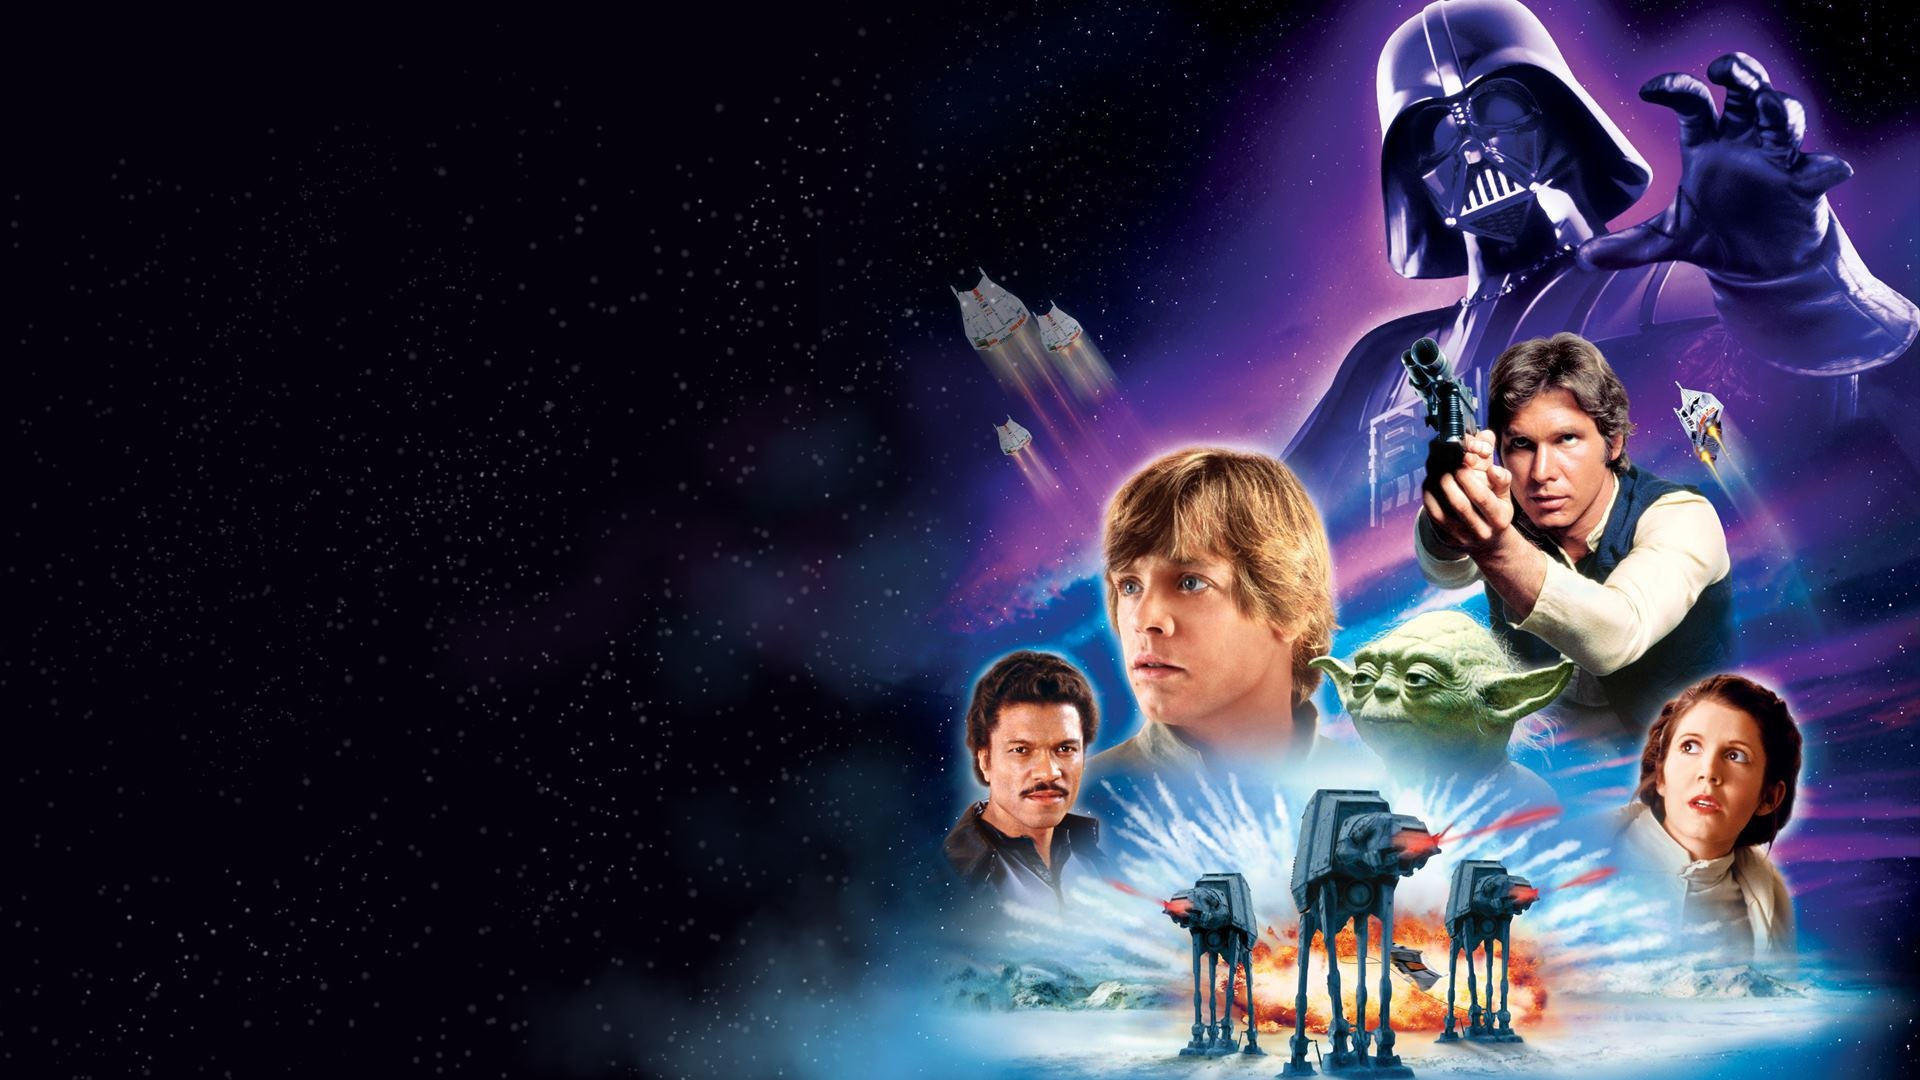 Free Download Star Wars Episode V The Empire Strikes Back Hd